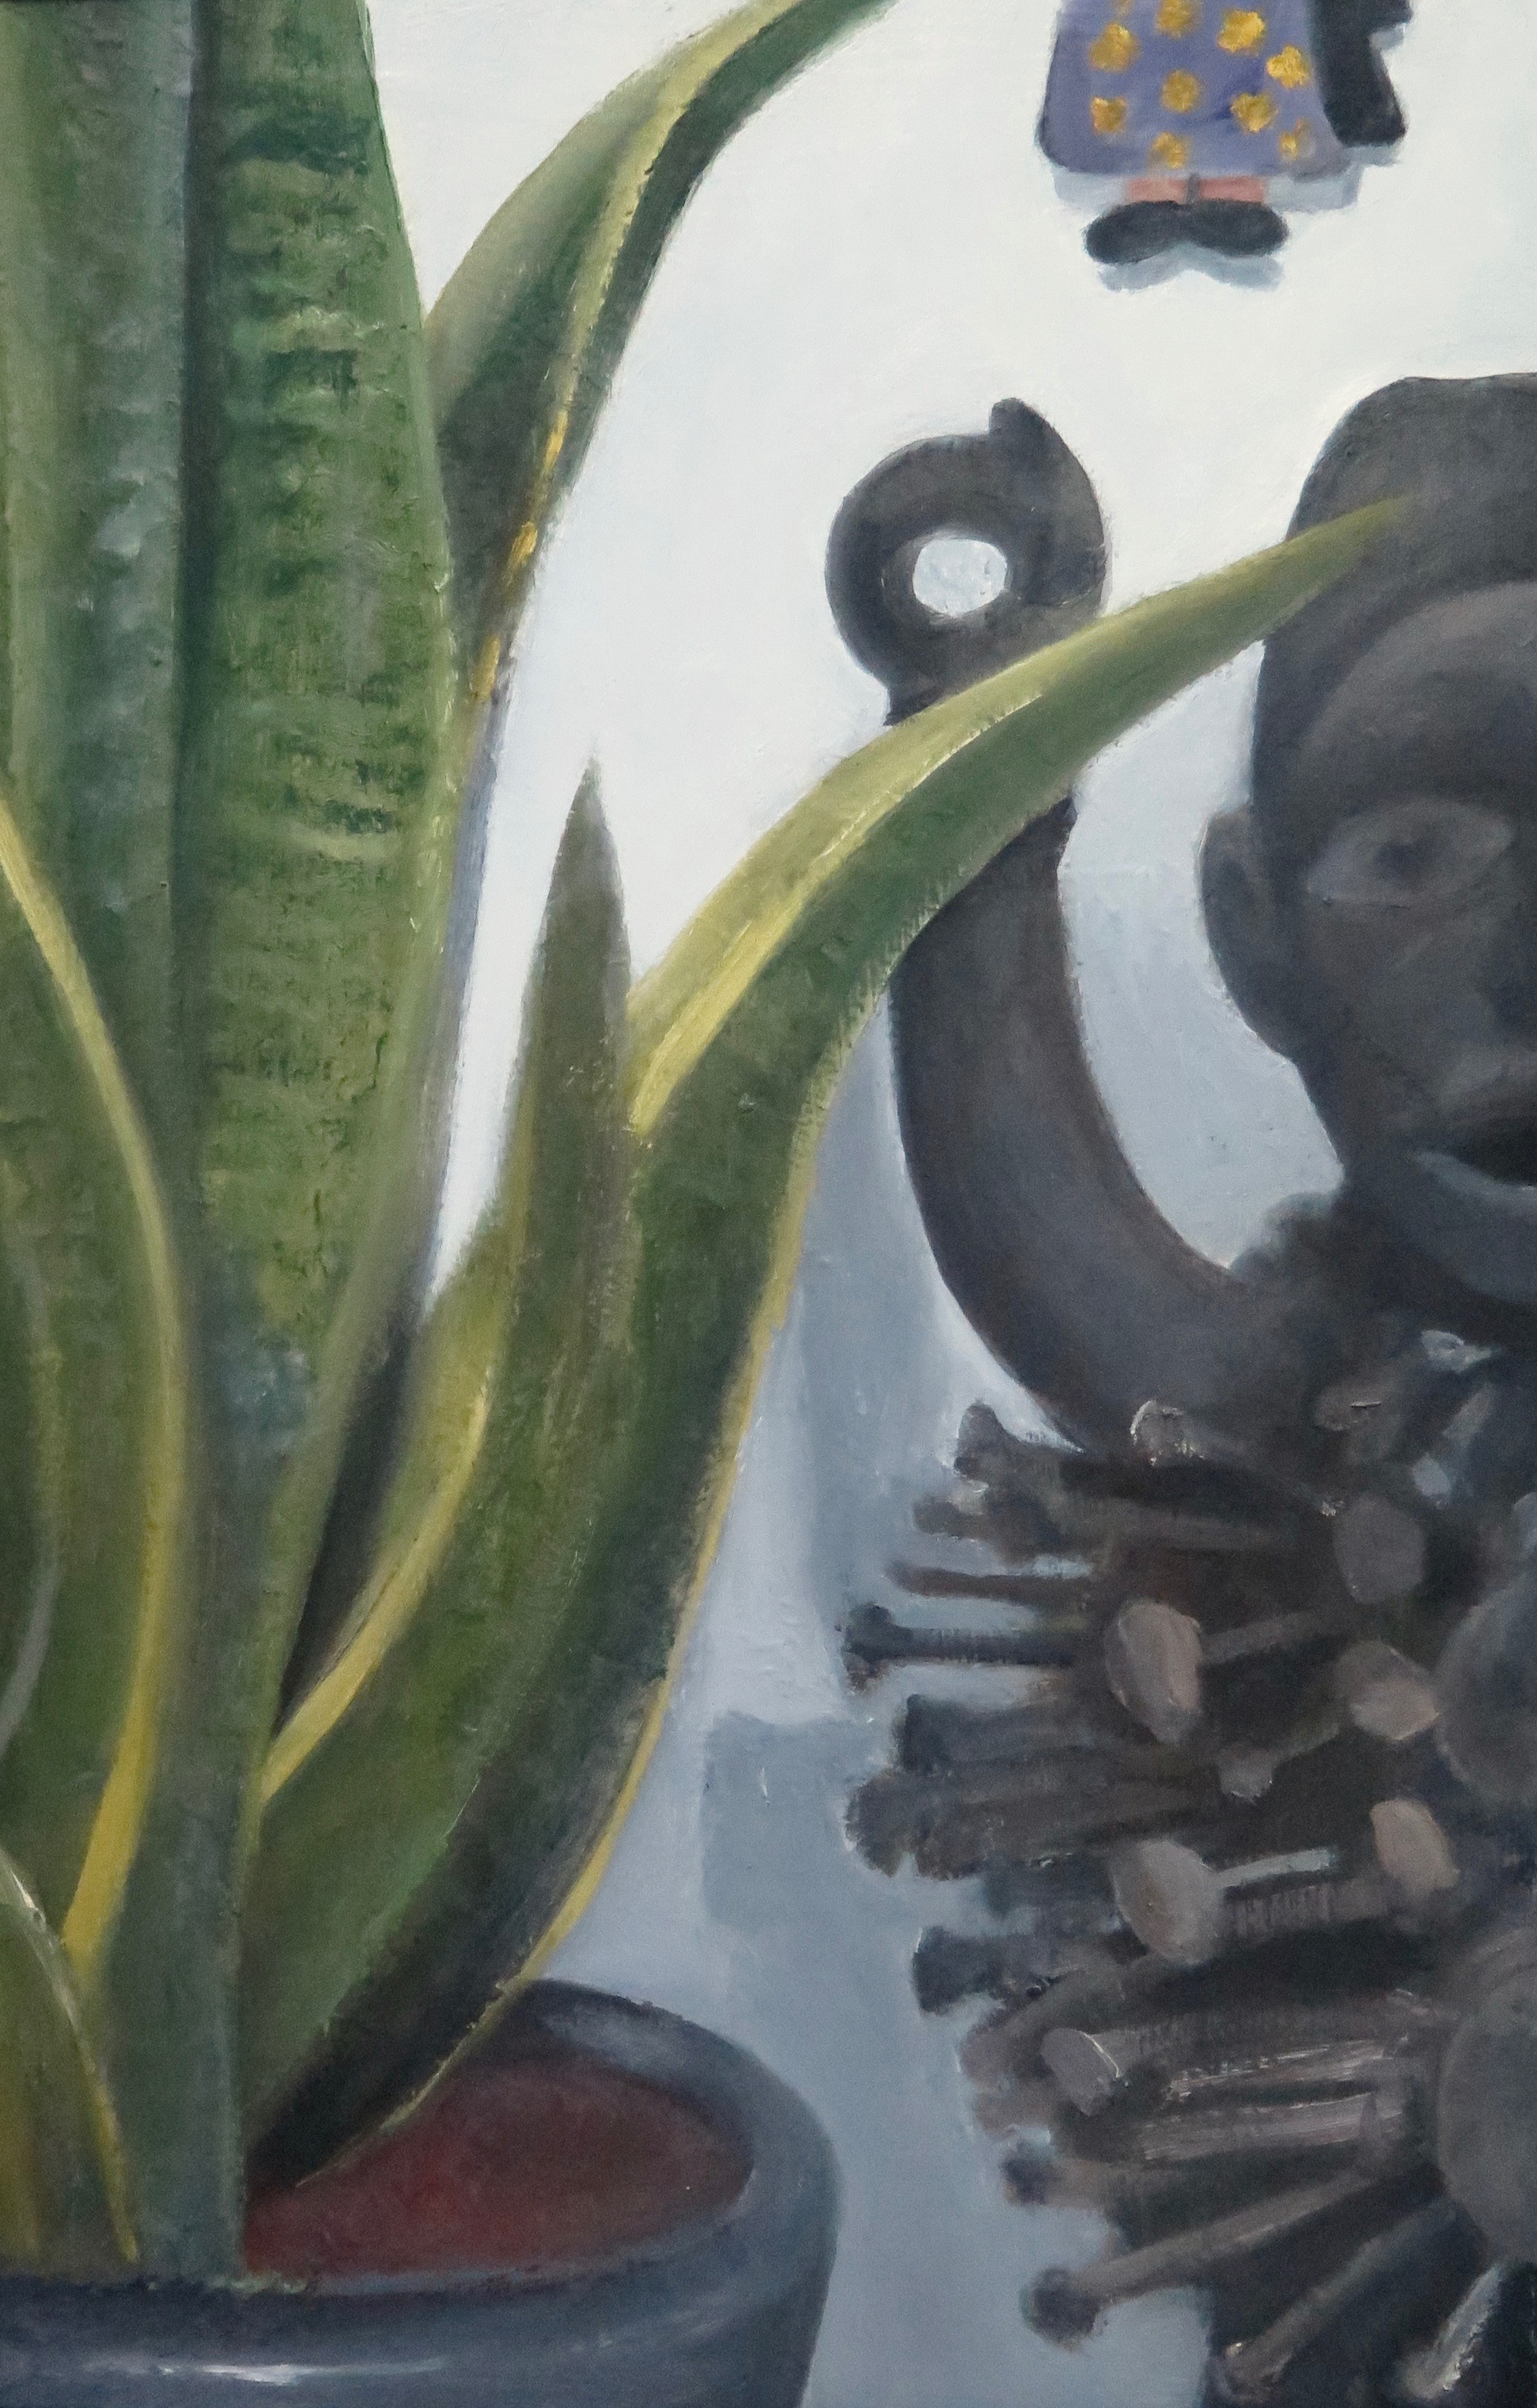 Athir_Shayota_Still_Life_with_Nkisi_and_Zapatista_Figures_2015